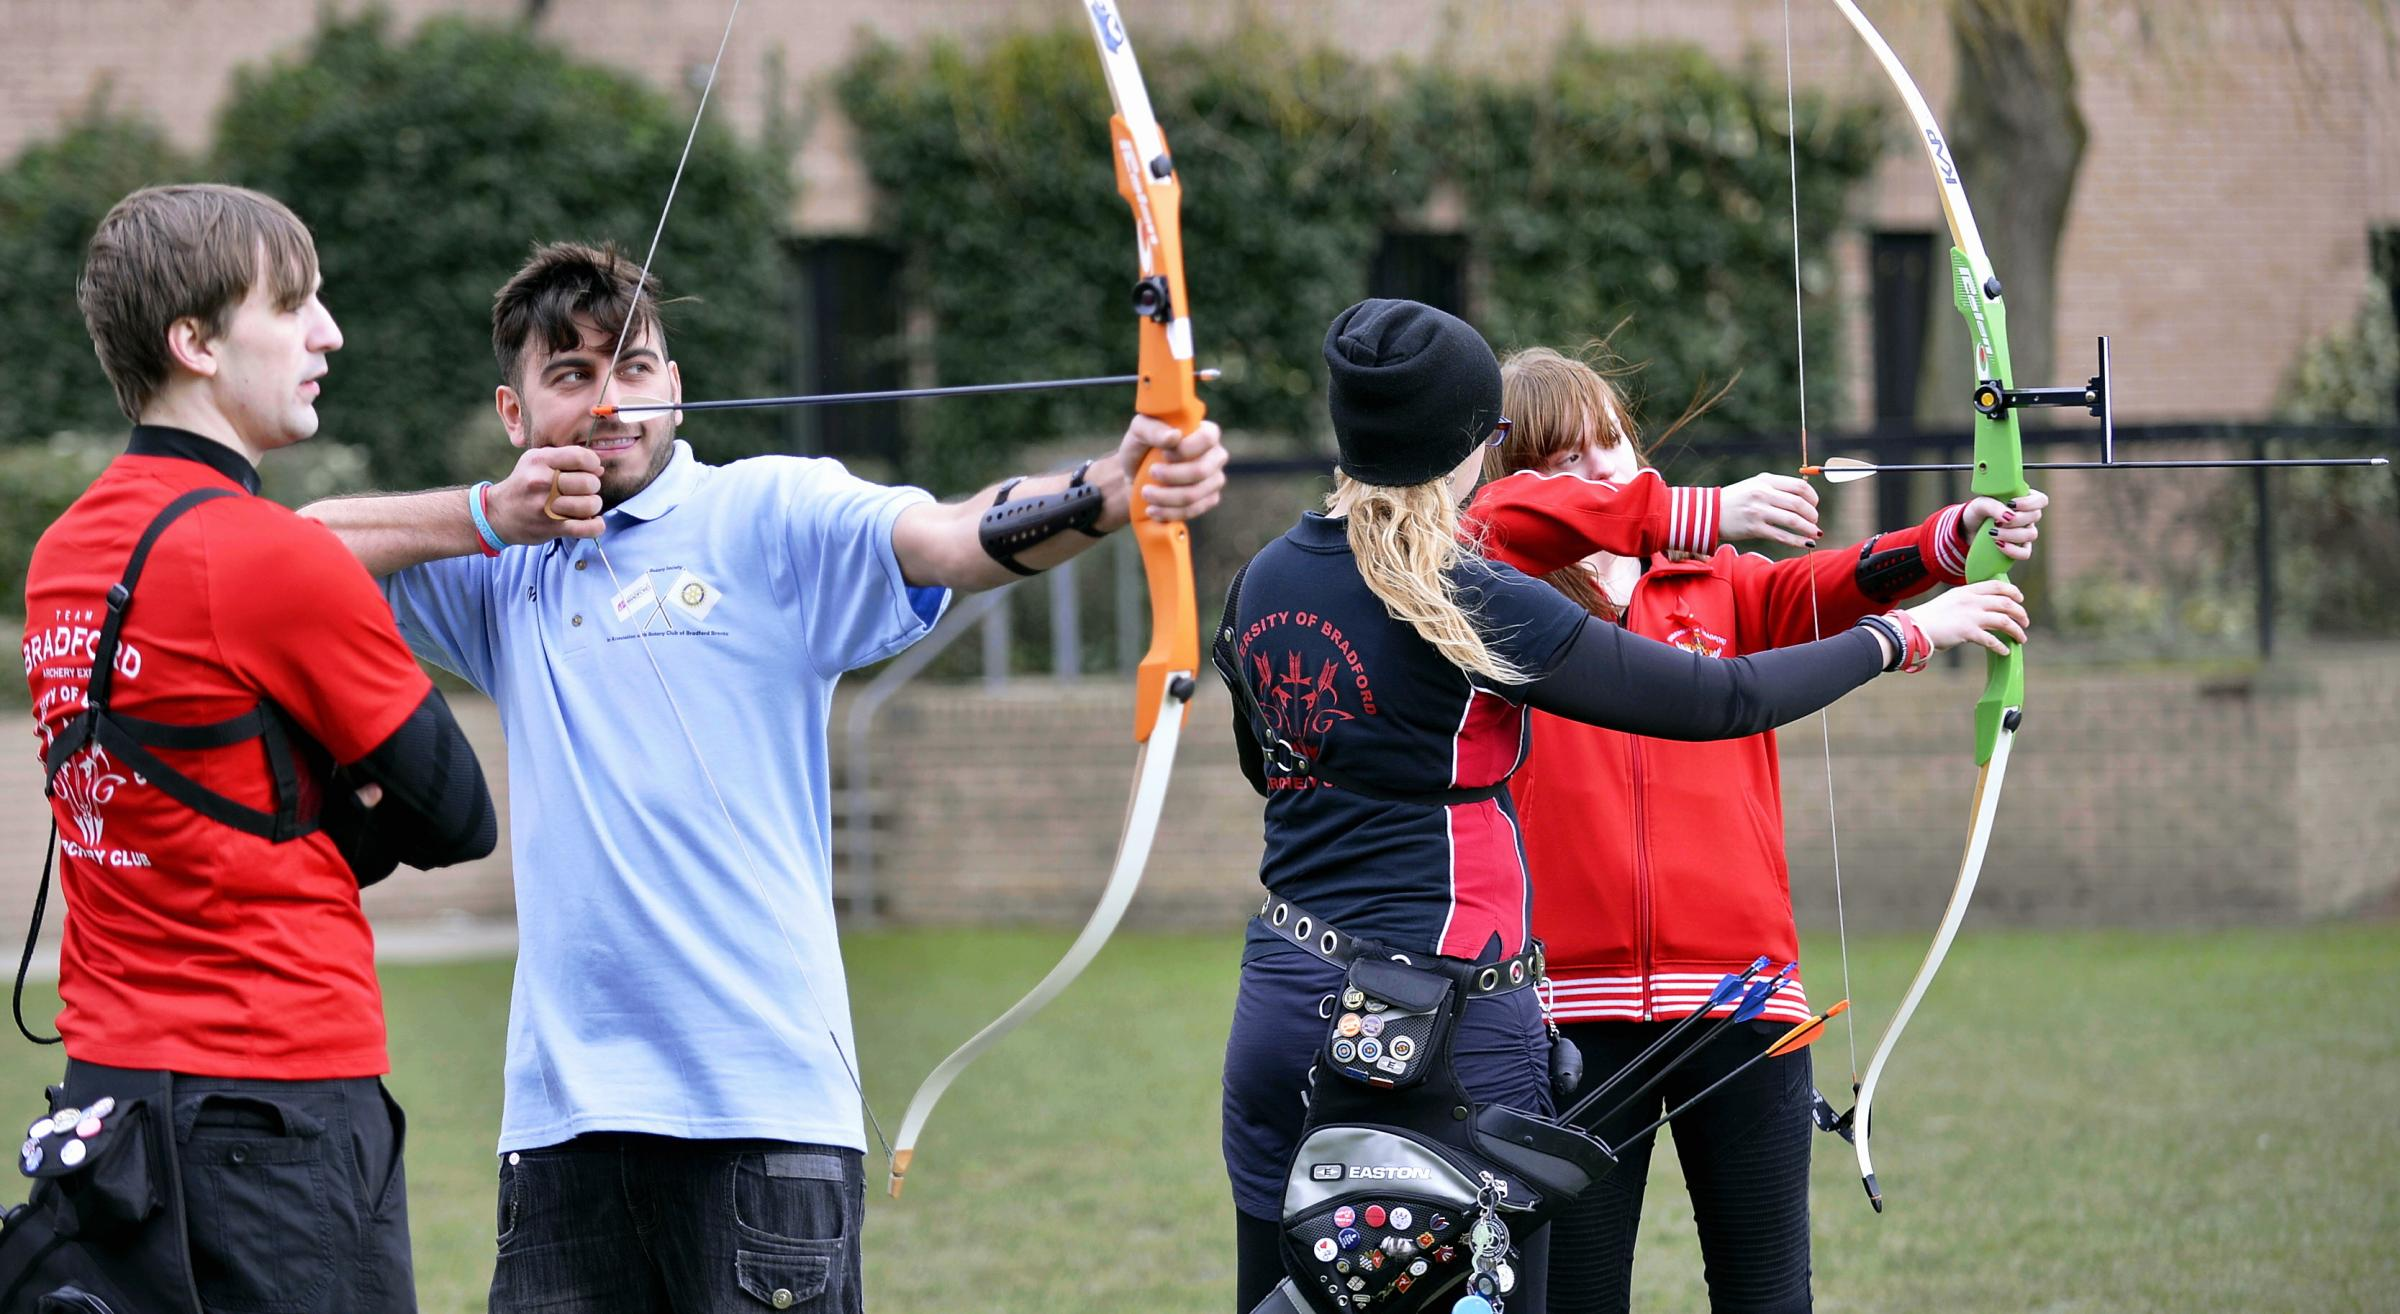 From left, University of Bradford students Dean Dowling, Imran Khan, Shelly Hurst and Gemma Jackson take part in an archery contest during the Colours Carnival